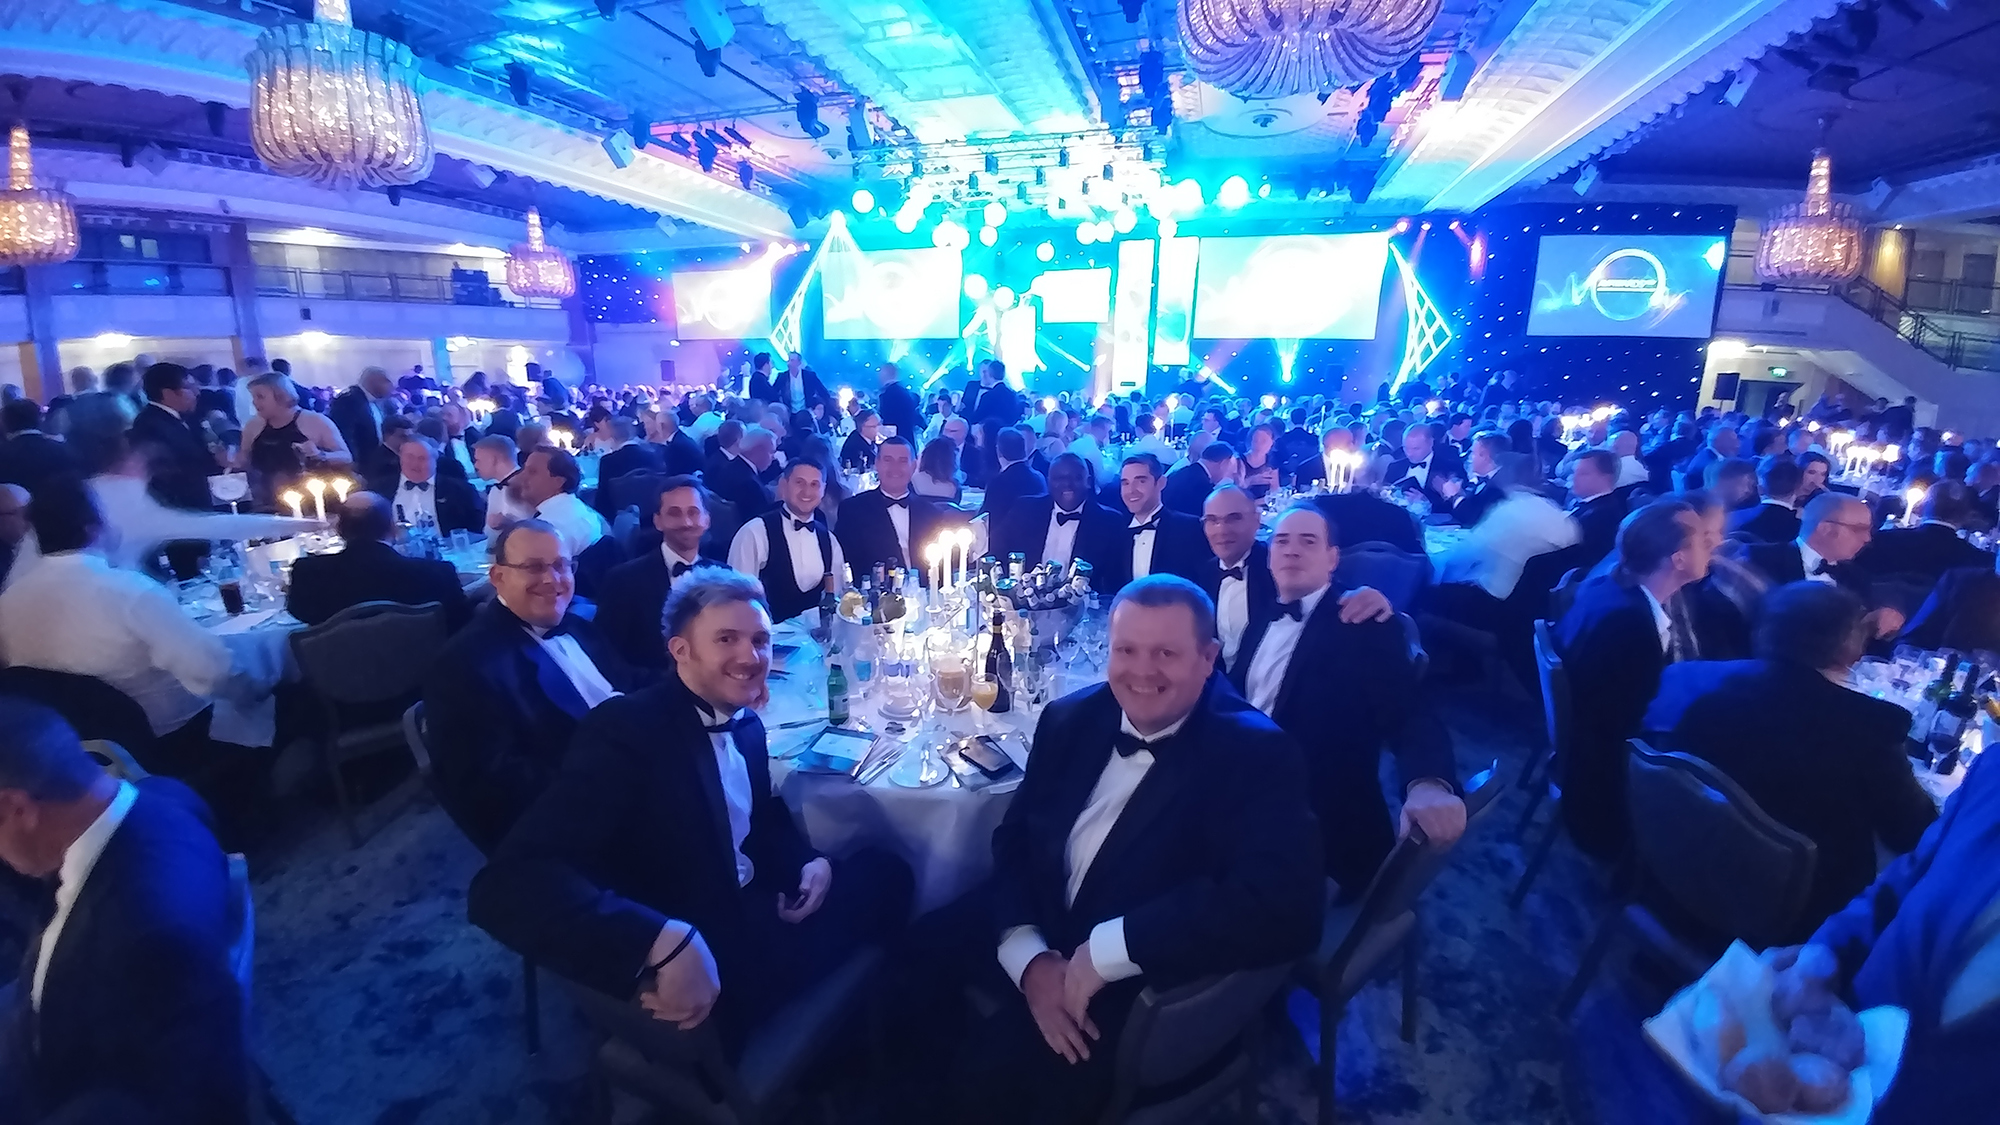 B-Tech AV Mounts - Manufacturer of the Year